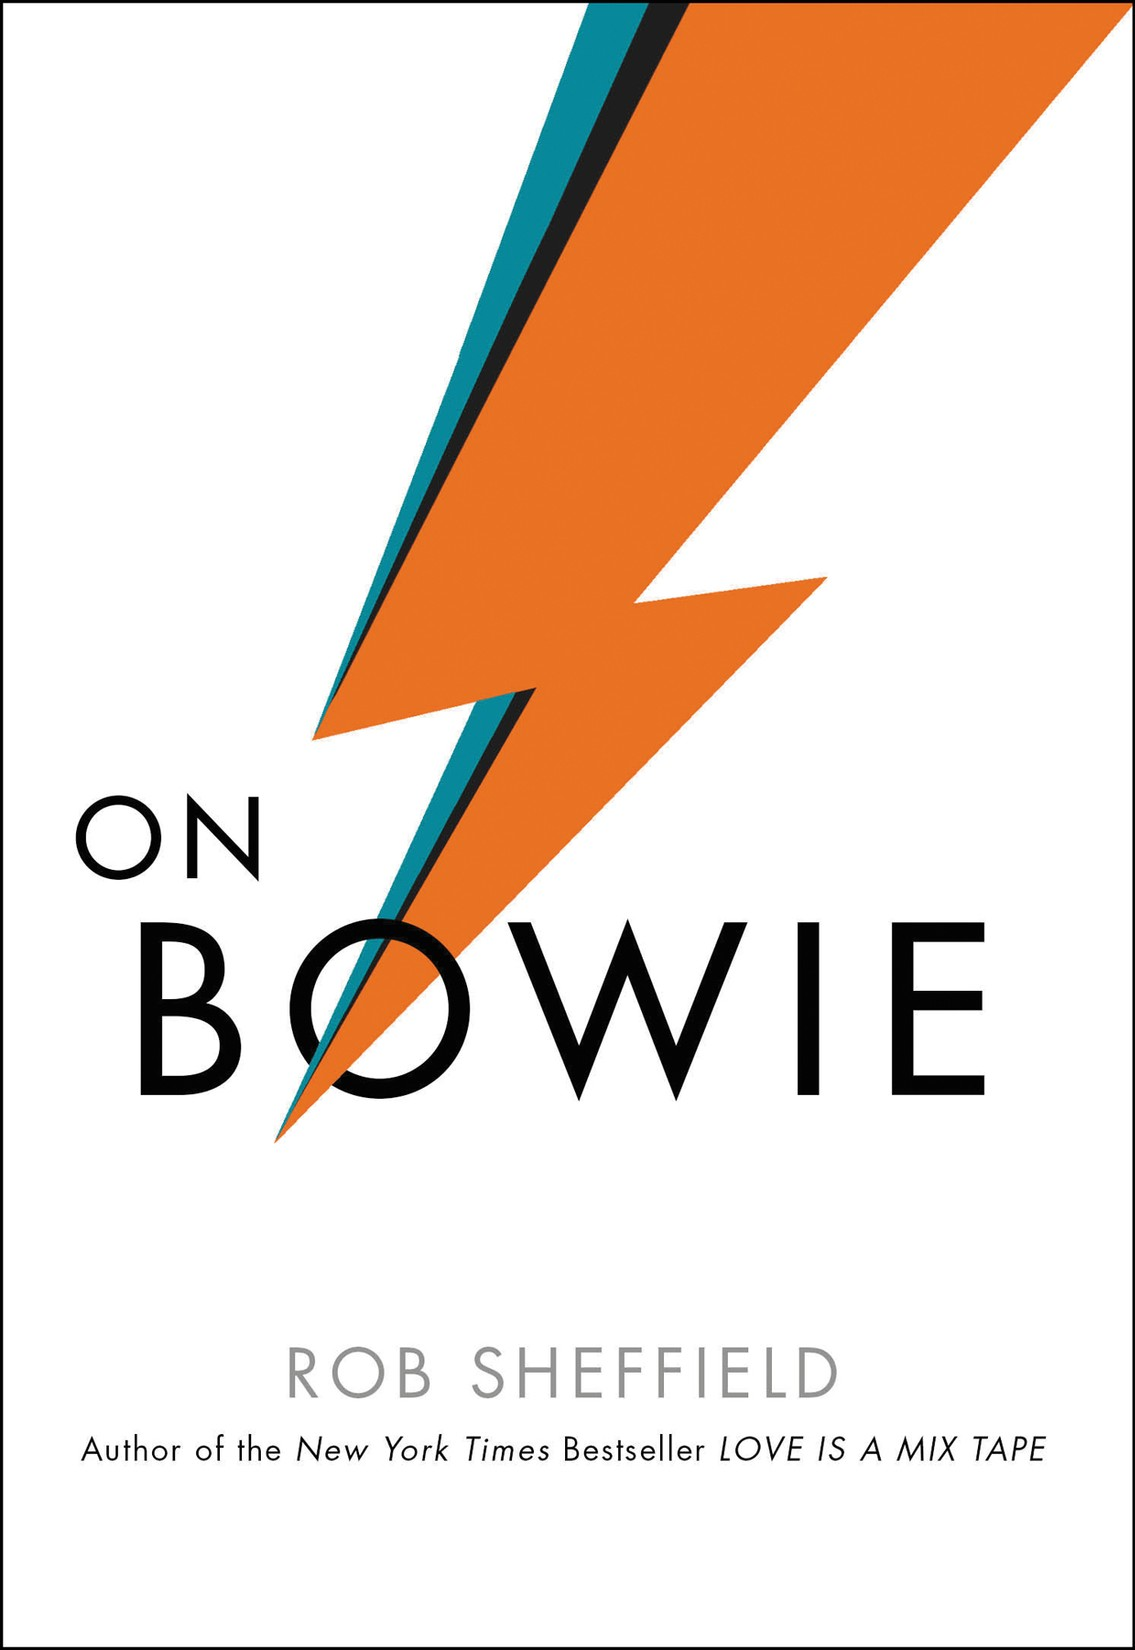 'On Bowie' by Rob Sheffield